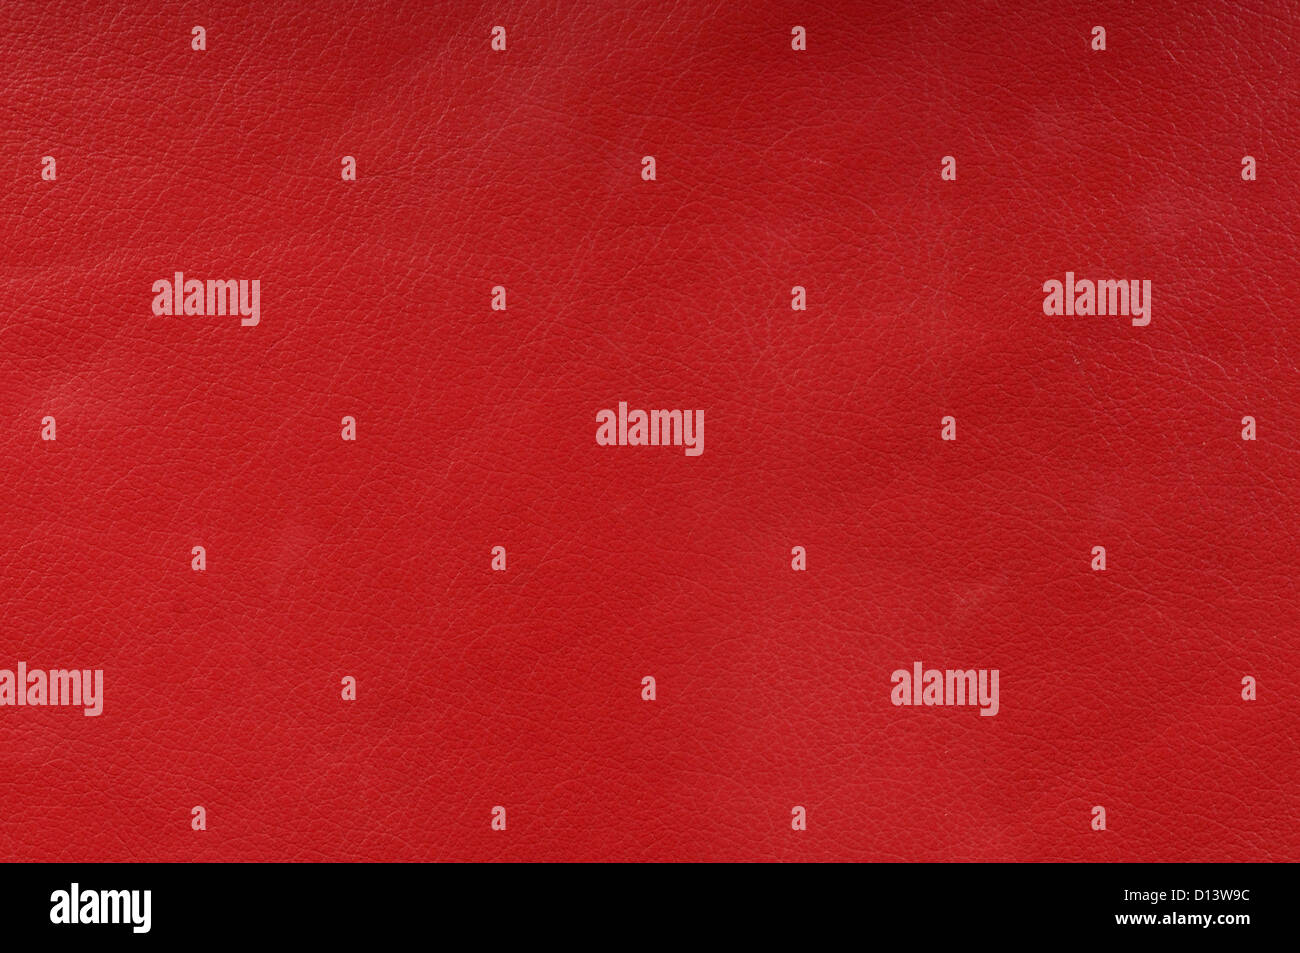 genuine red leather texture for background - Stock Image